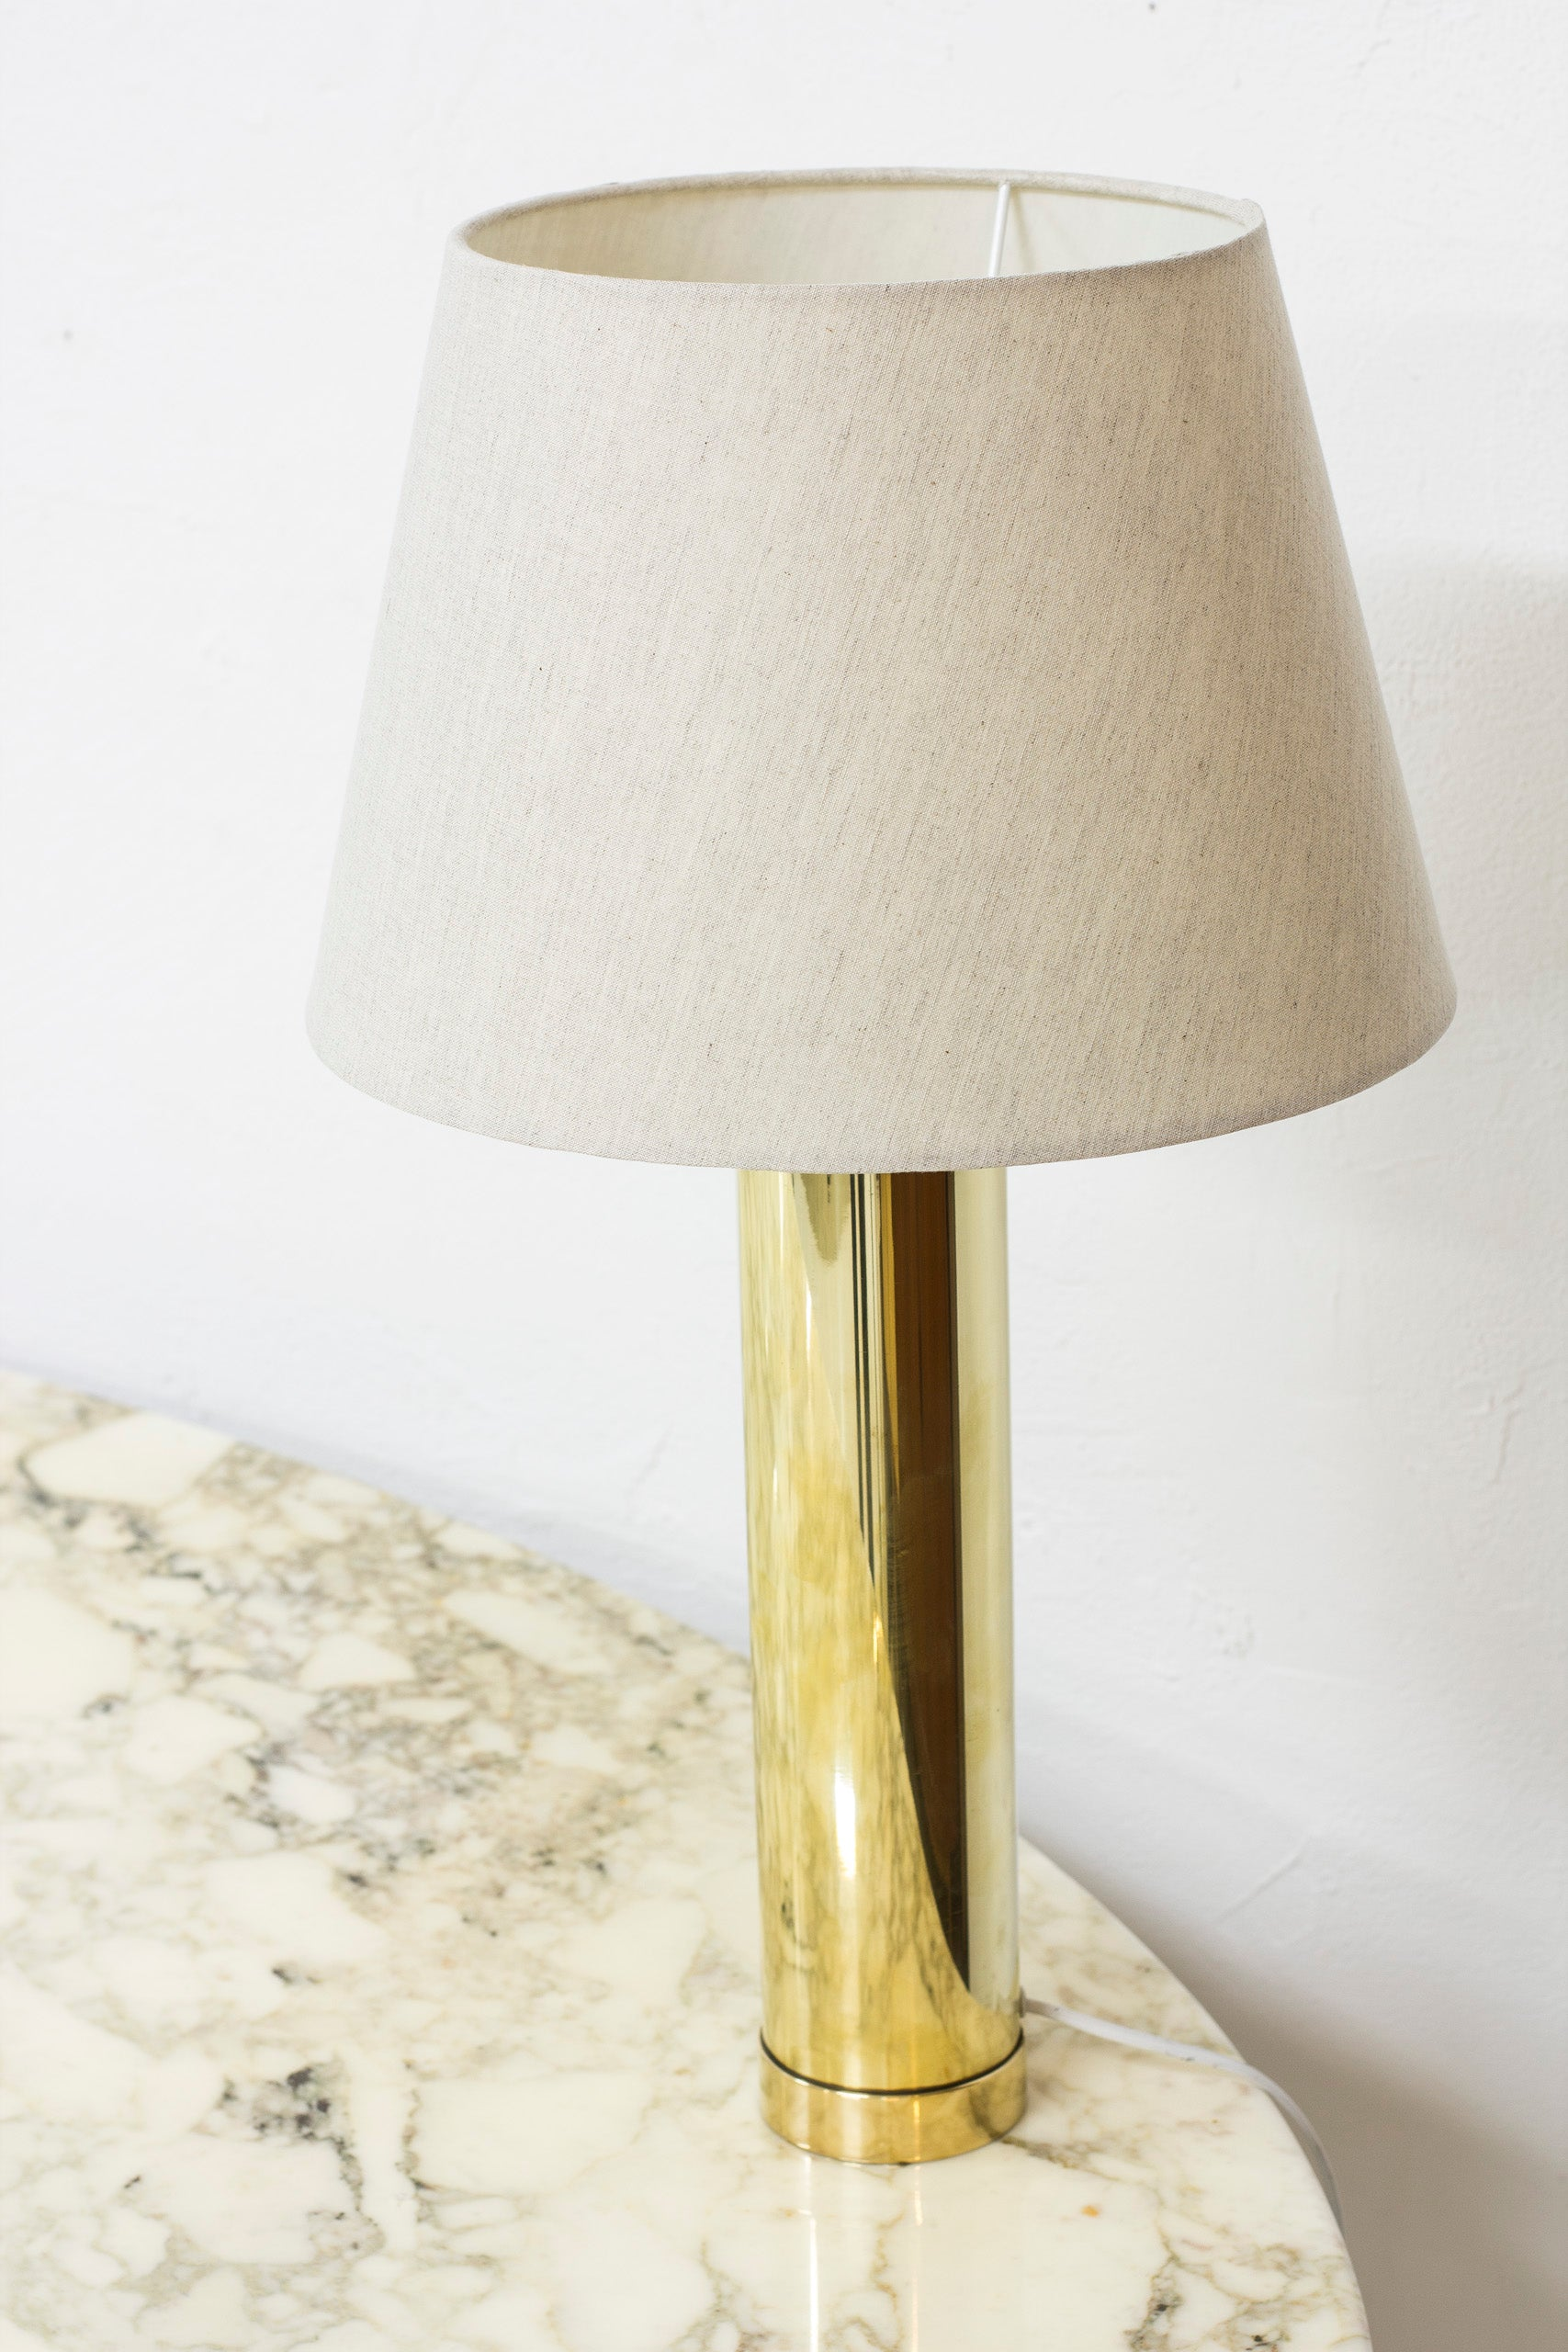 1960s Brass table lamp by Bergboms